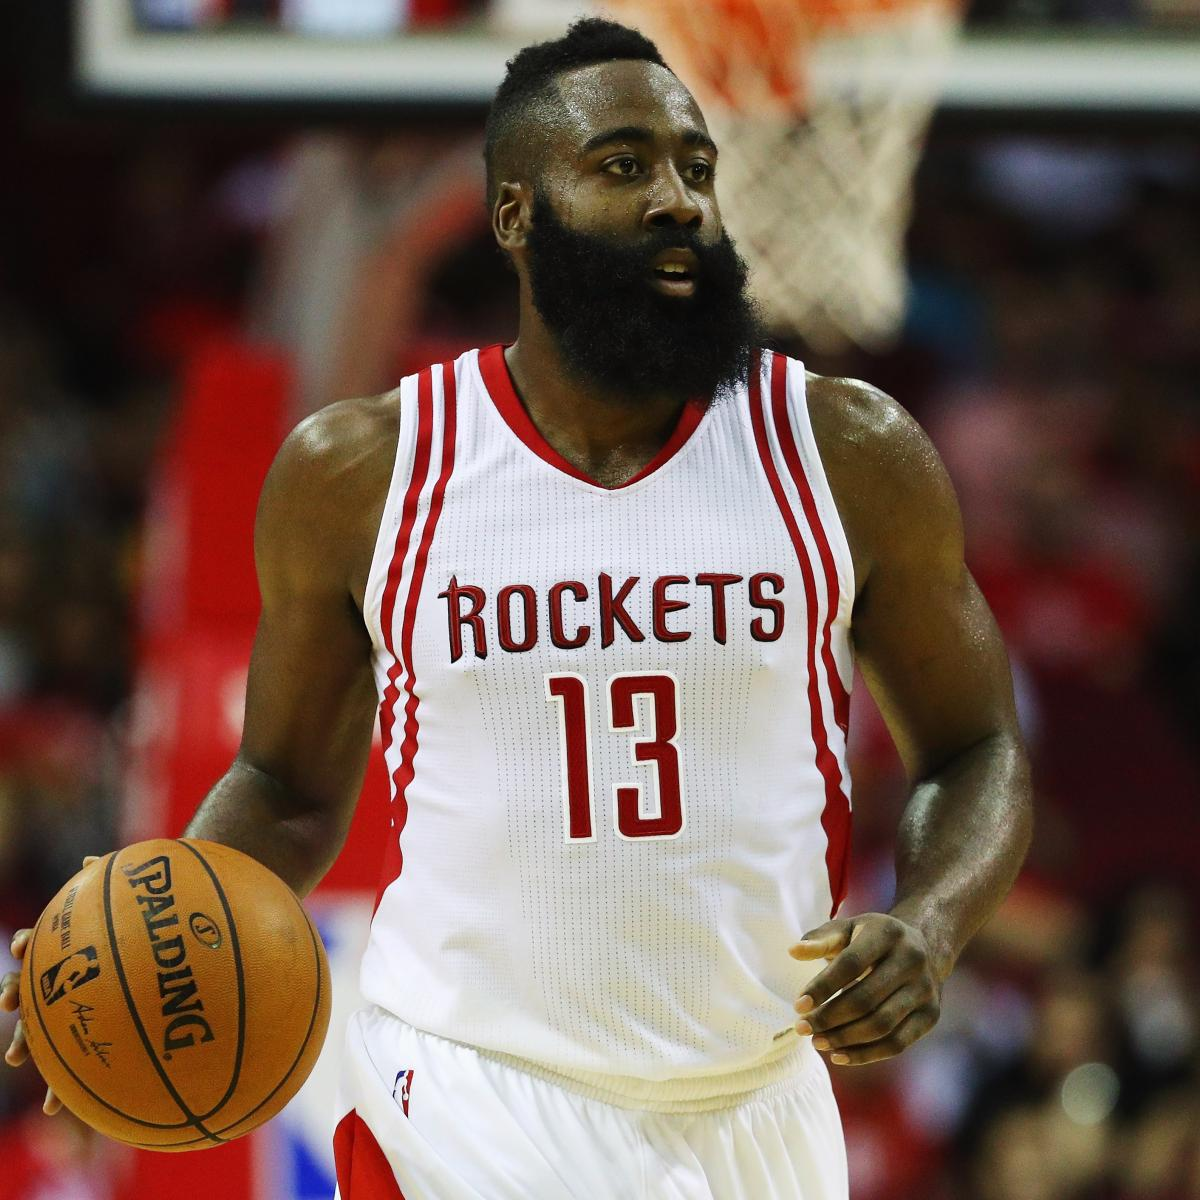 James Harden Latest News: Think You Know James Harden? He And The Rockets Are About